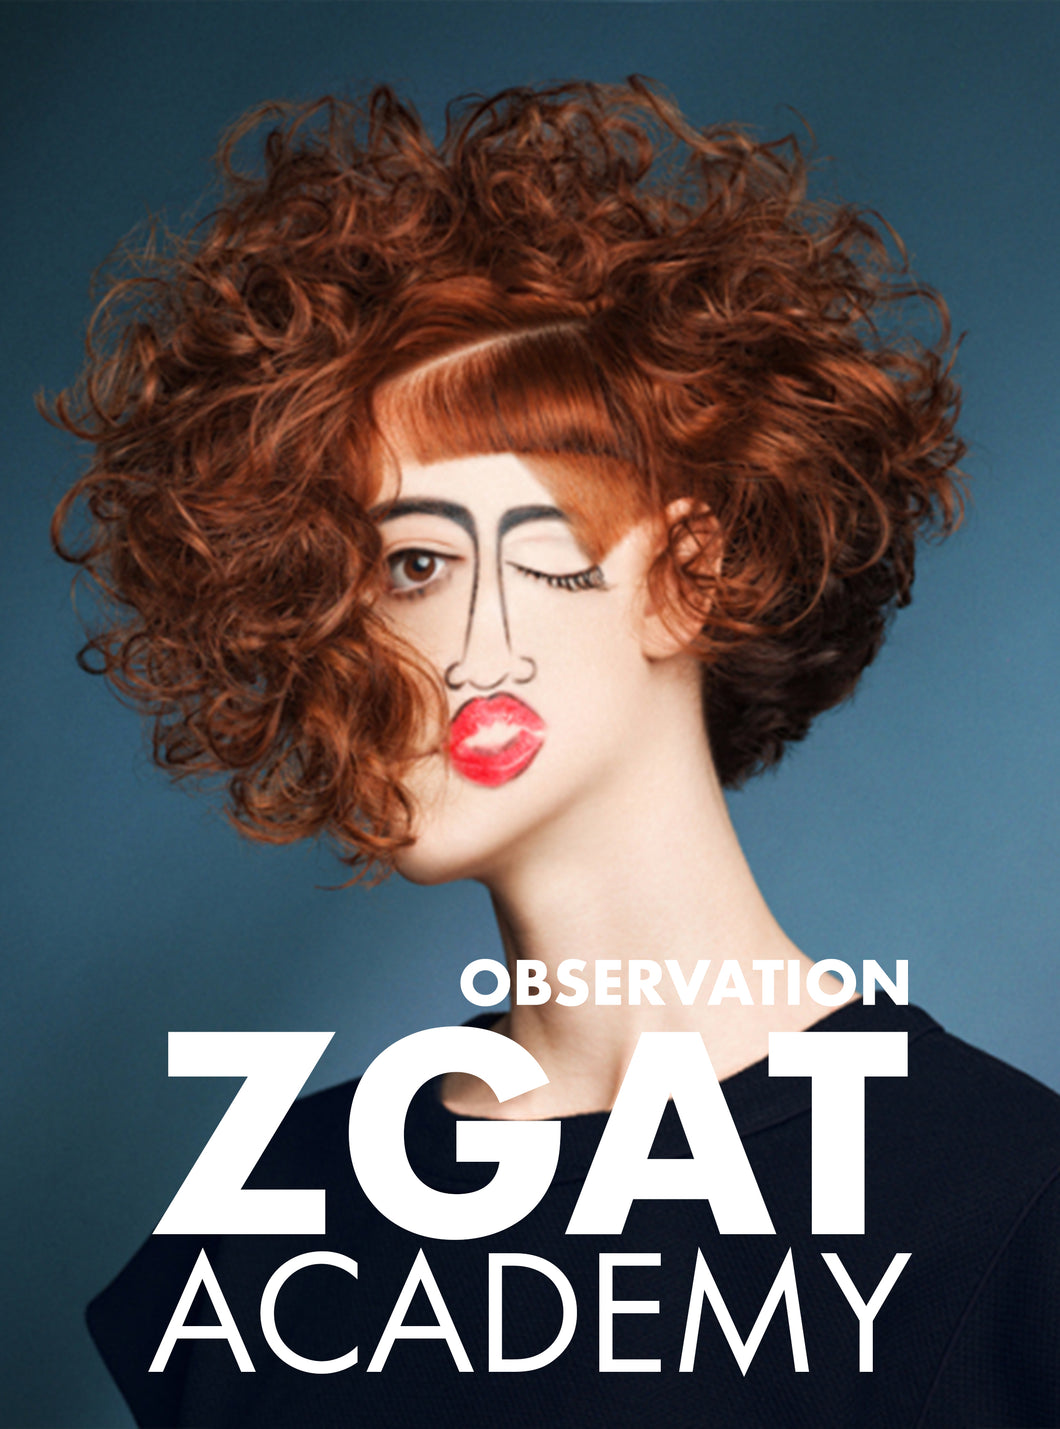 ZGAT Academy | May 29 - June 1 | Observation Ticket